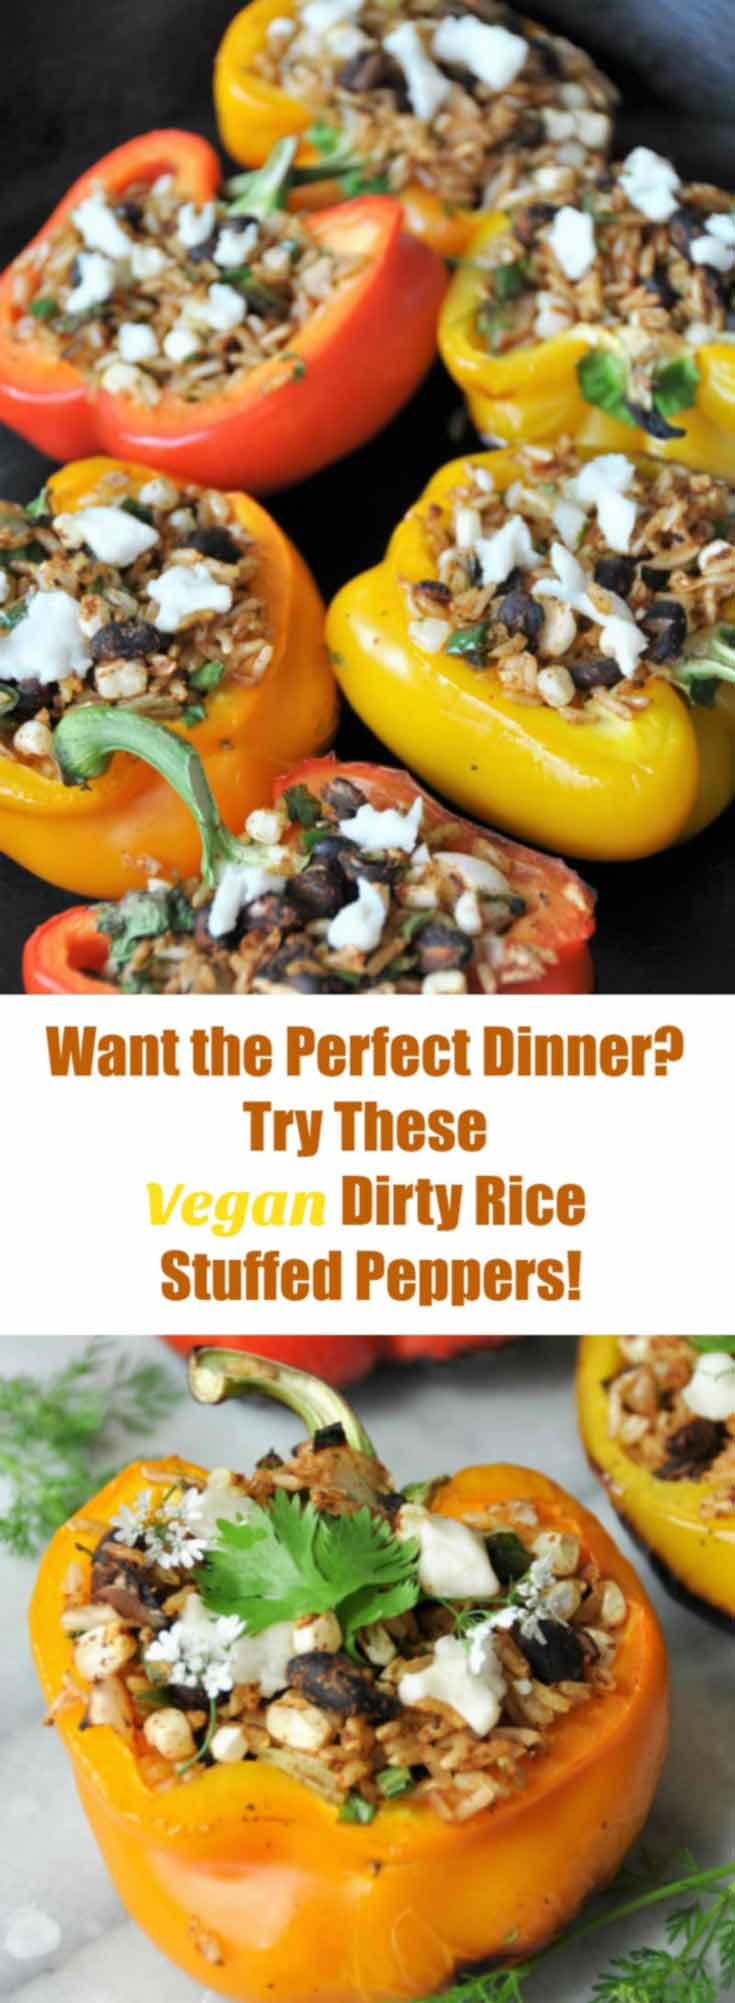 Take your stuffed pepper recipe to another level! Stuff them with dirty rice and grill them. So delicious! www.veganosity.com